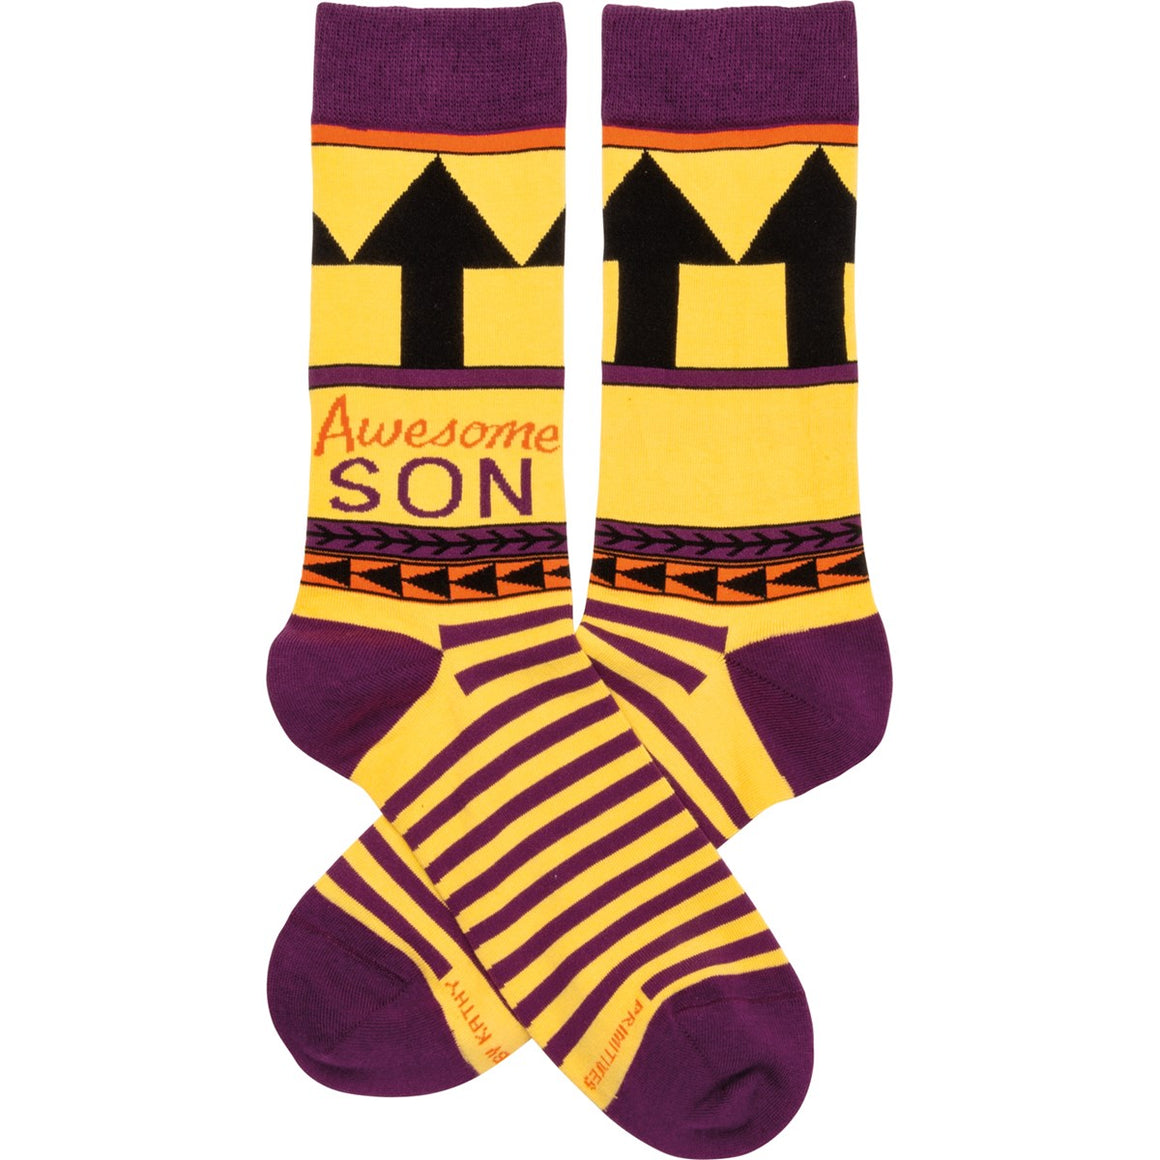 Awesome Son Socks